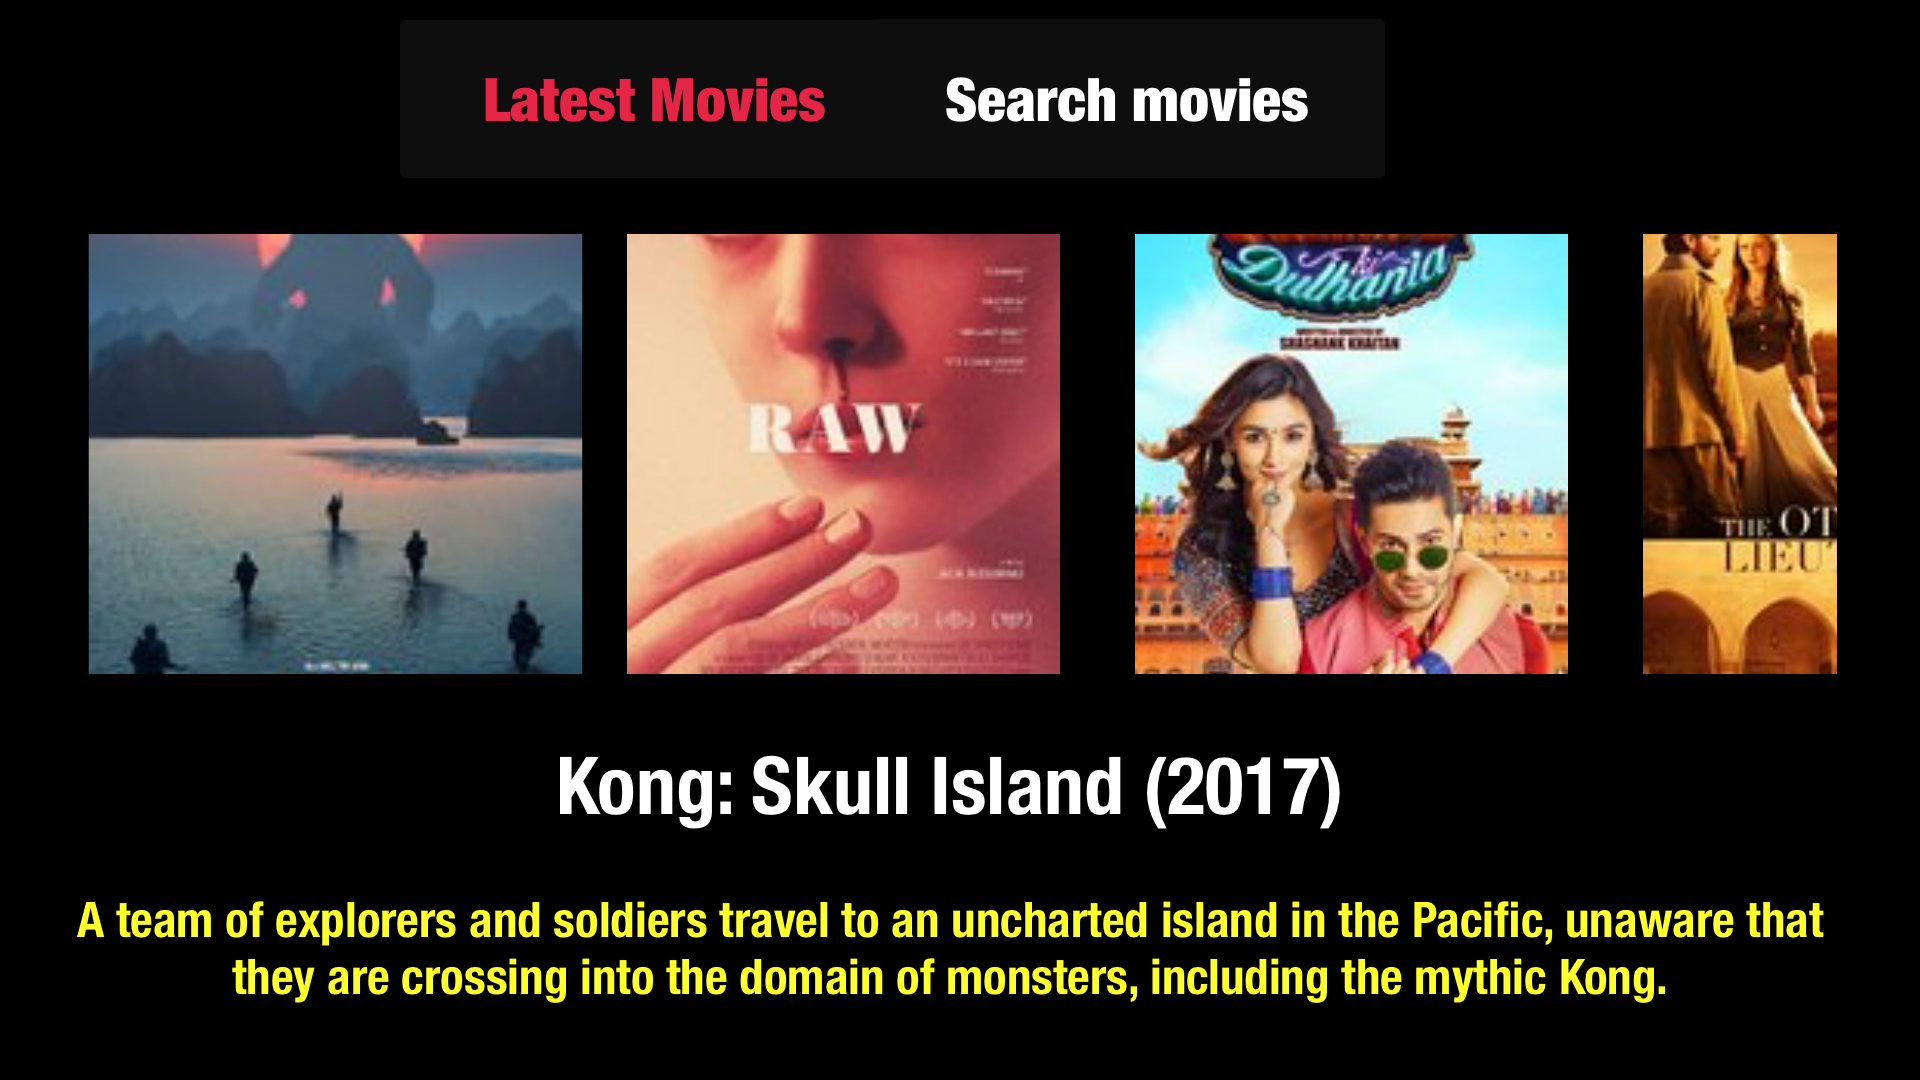 Movies Hub - Latest, Upcoming and Search Any Movie screenshot 9